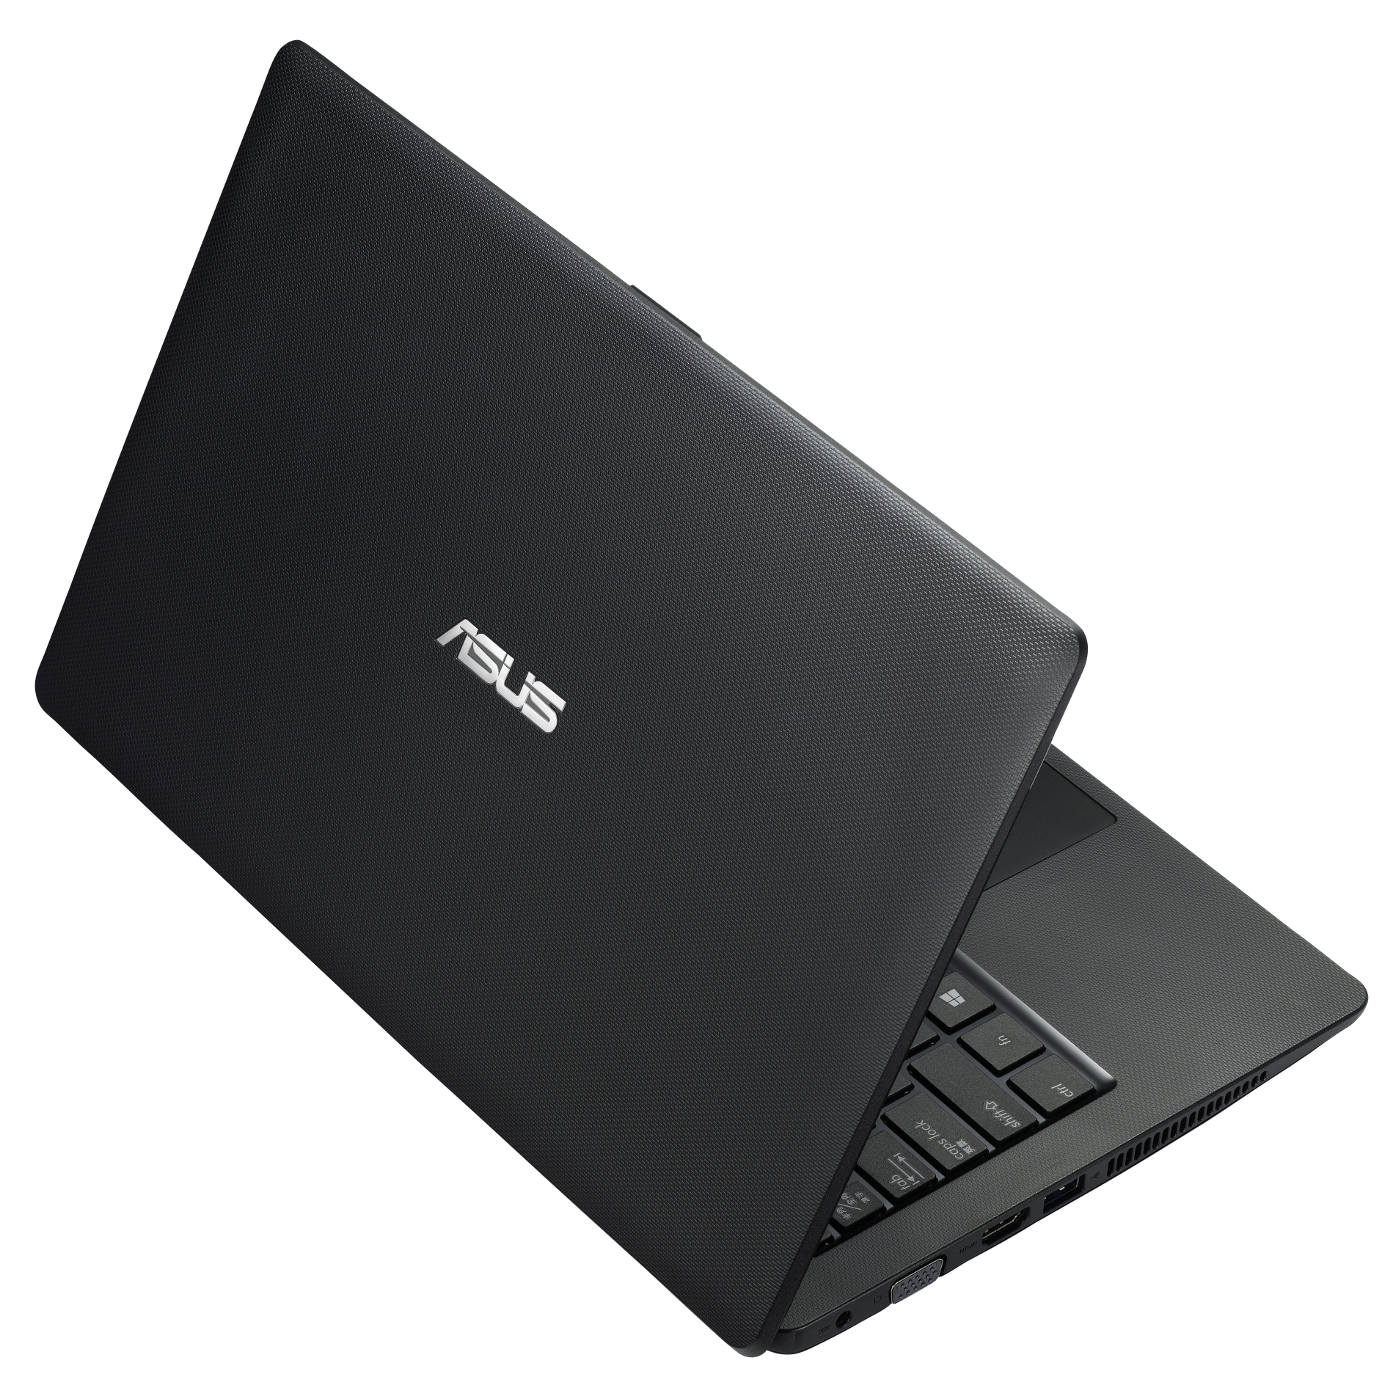 asus vivobook f200ma bing kx376b 90nb04u2 m09060 achat. Black Bedroom Furniture Sets. Home Design Ideas